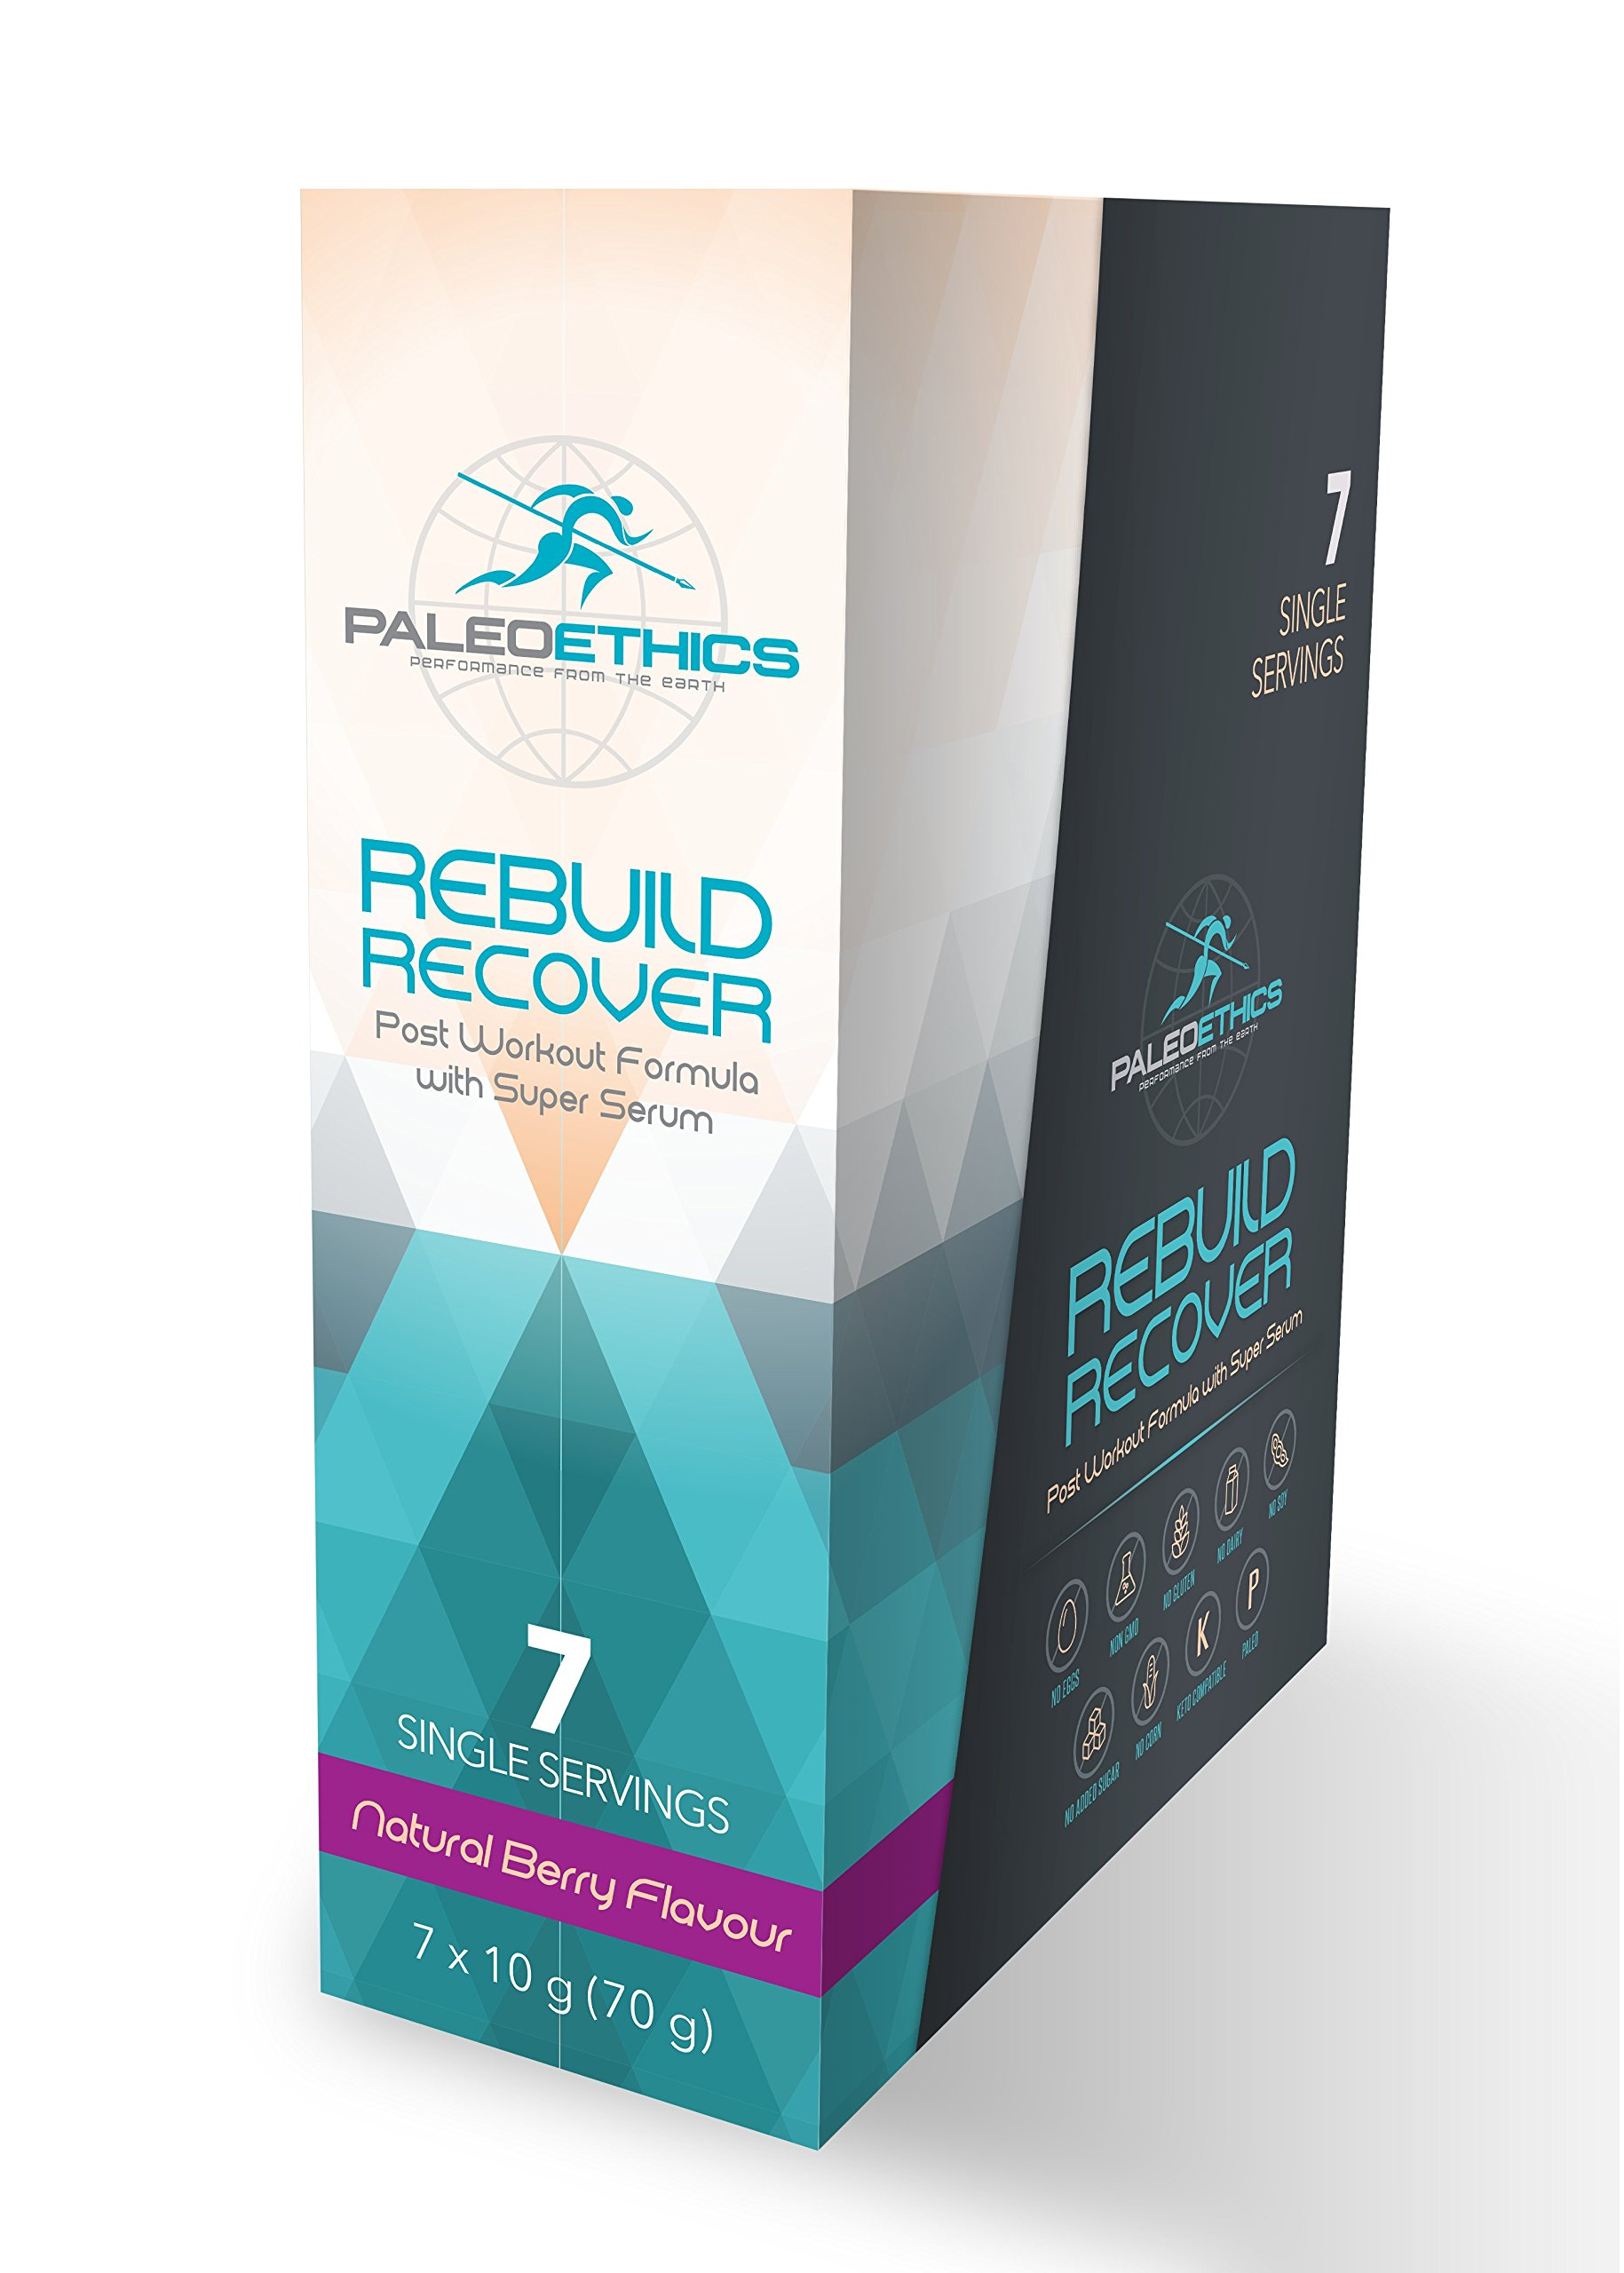 PALEOETHICS Rebuild Recover Post Workout Formula with Super Serum, Natural Berry, 7 Count